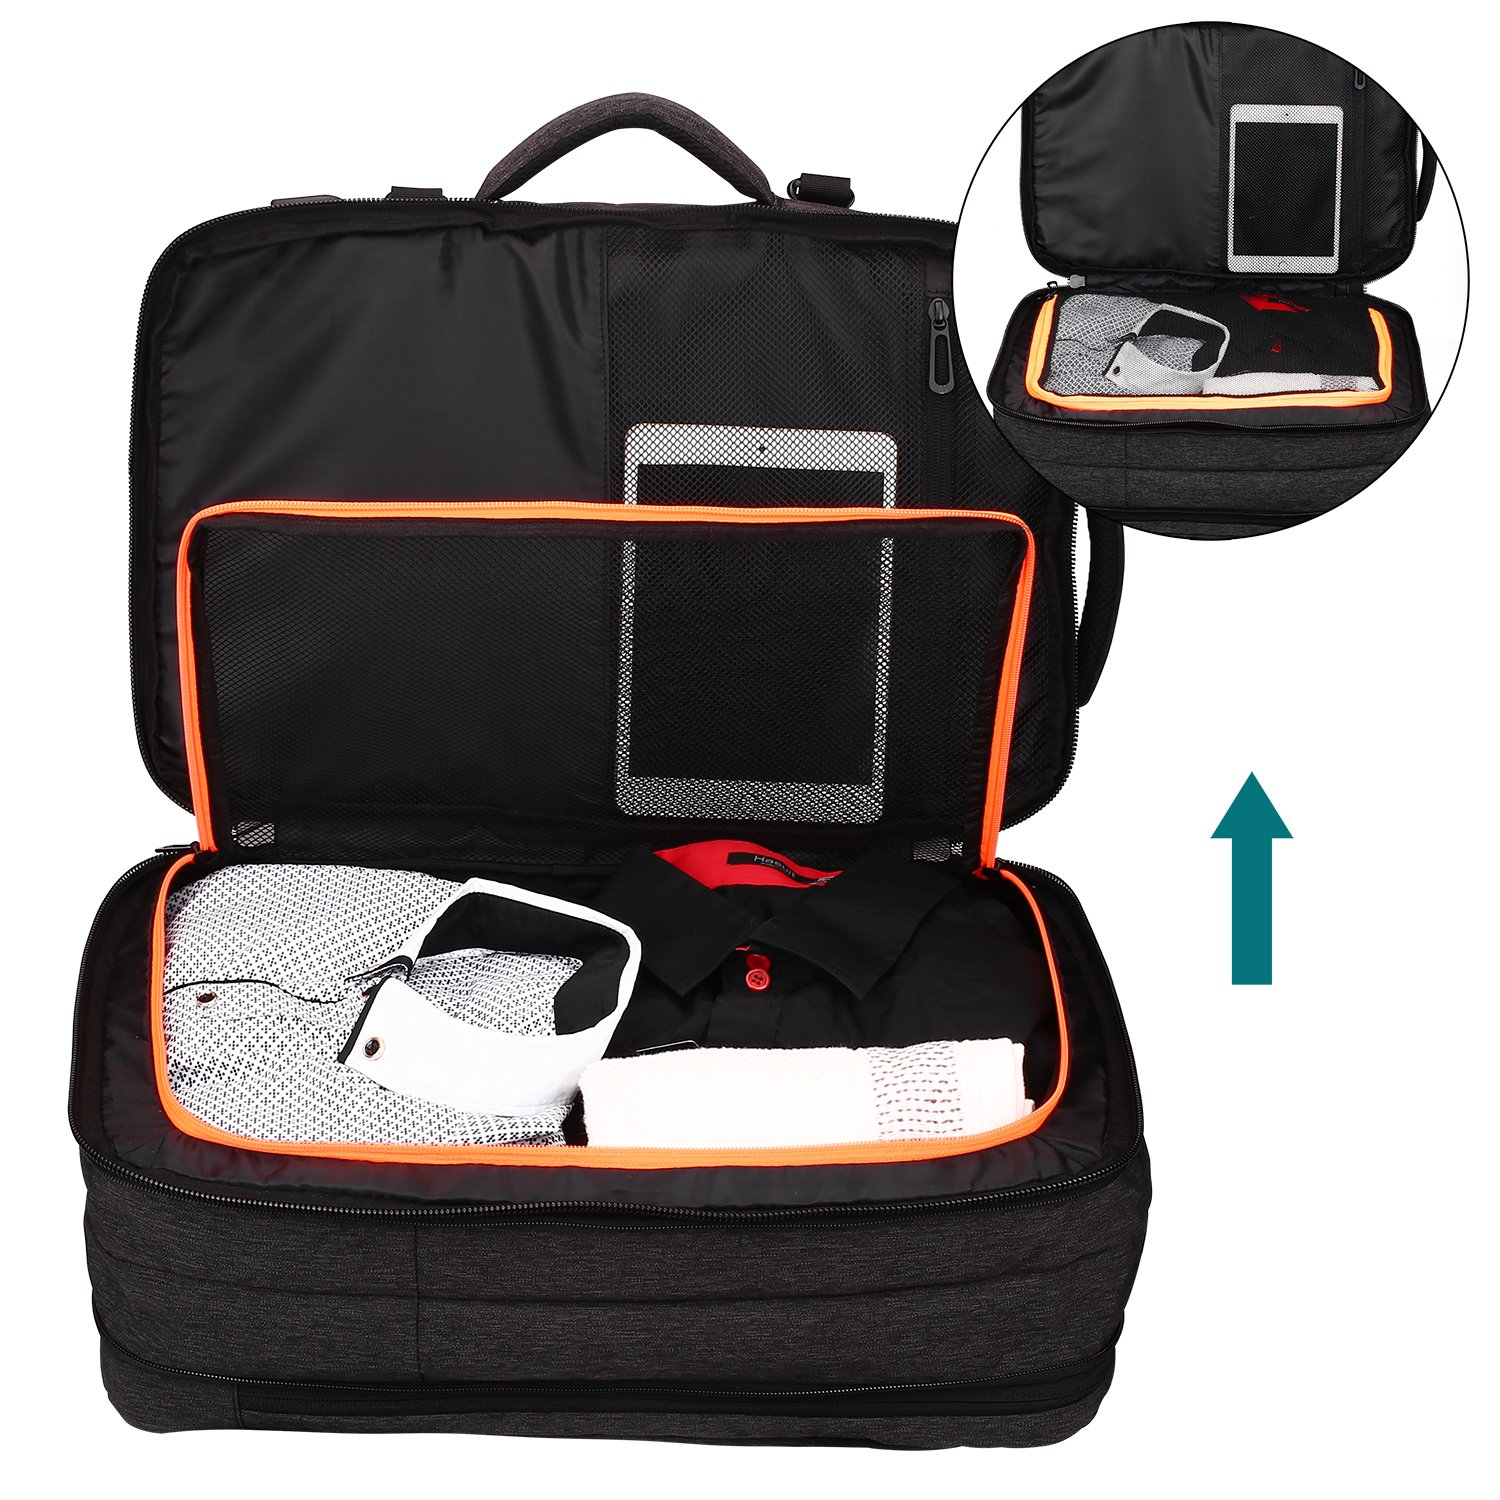 Lifeasy Expandable Travel Backpack Features